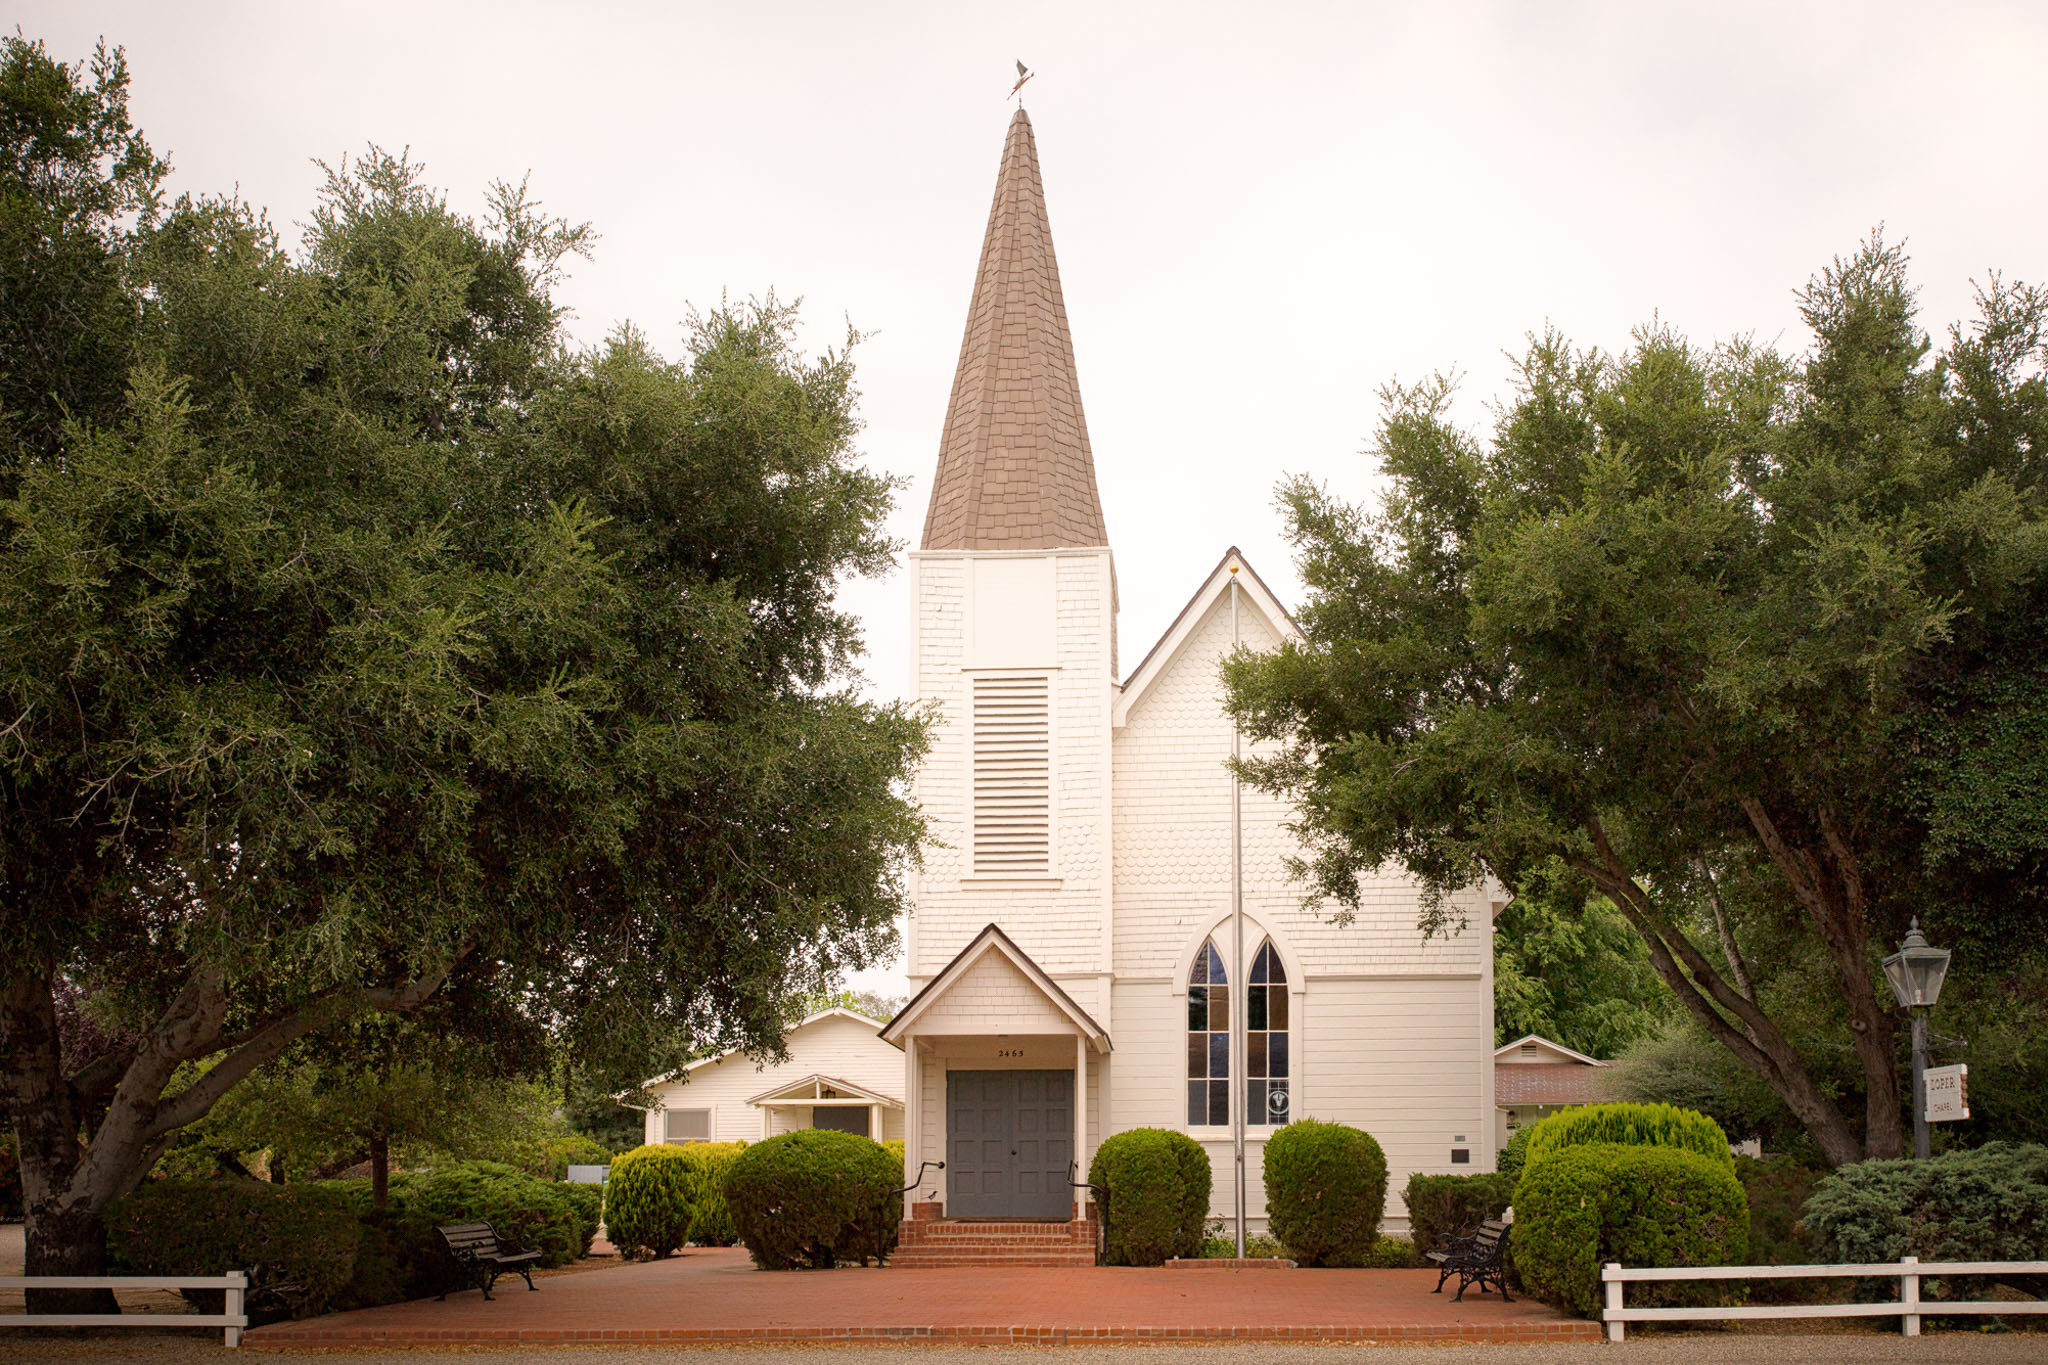 front-elevation-of-the-ballard-california-country-church-located-in-D34YY5.jpg